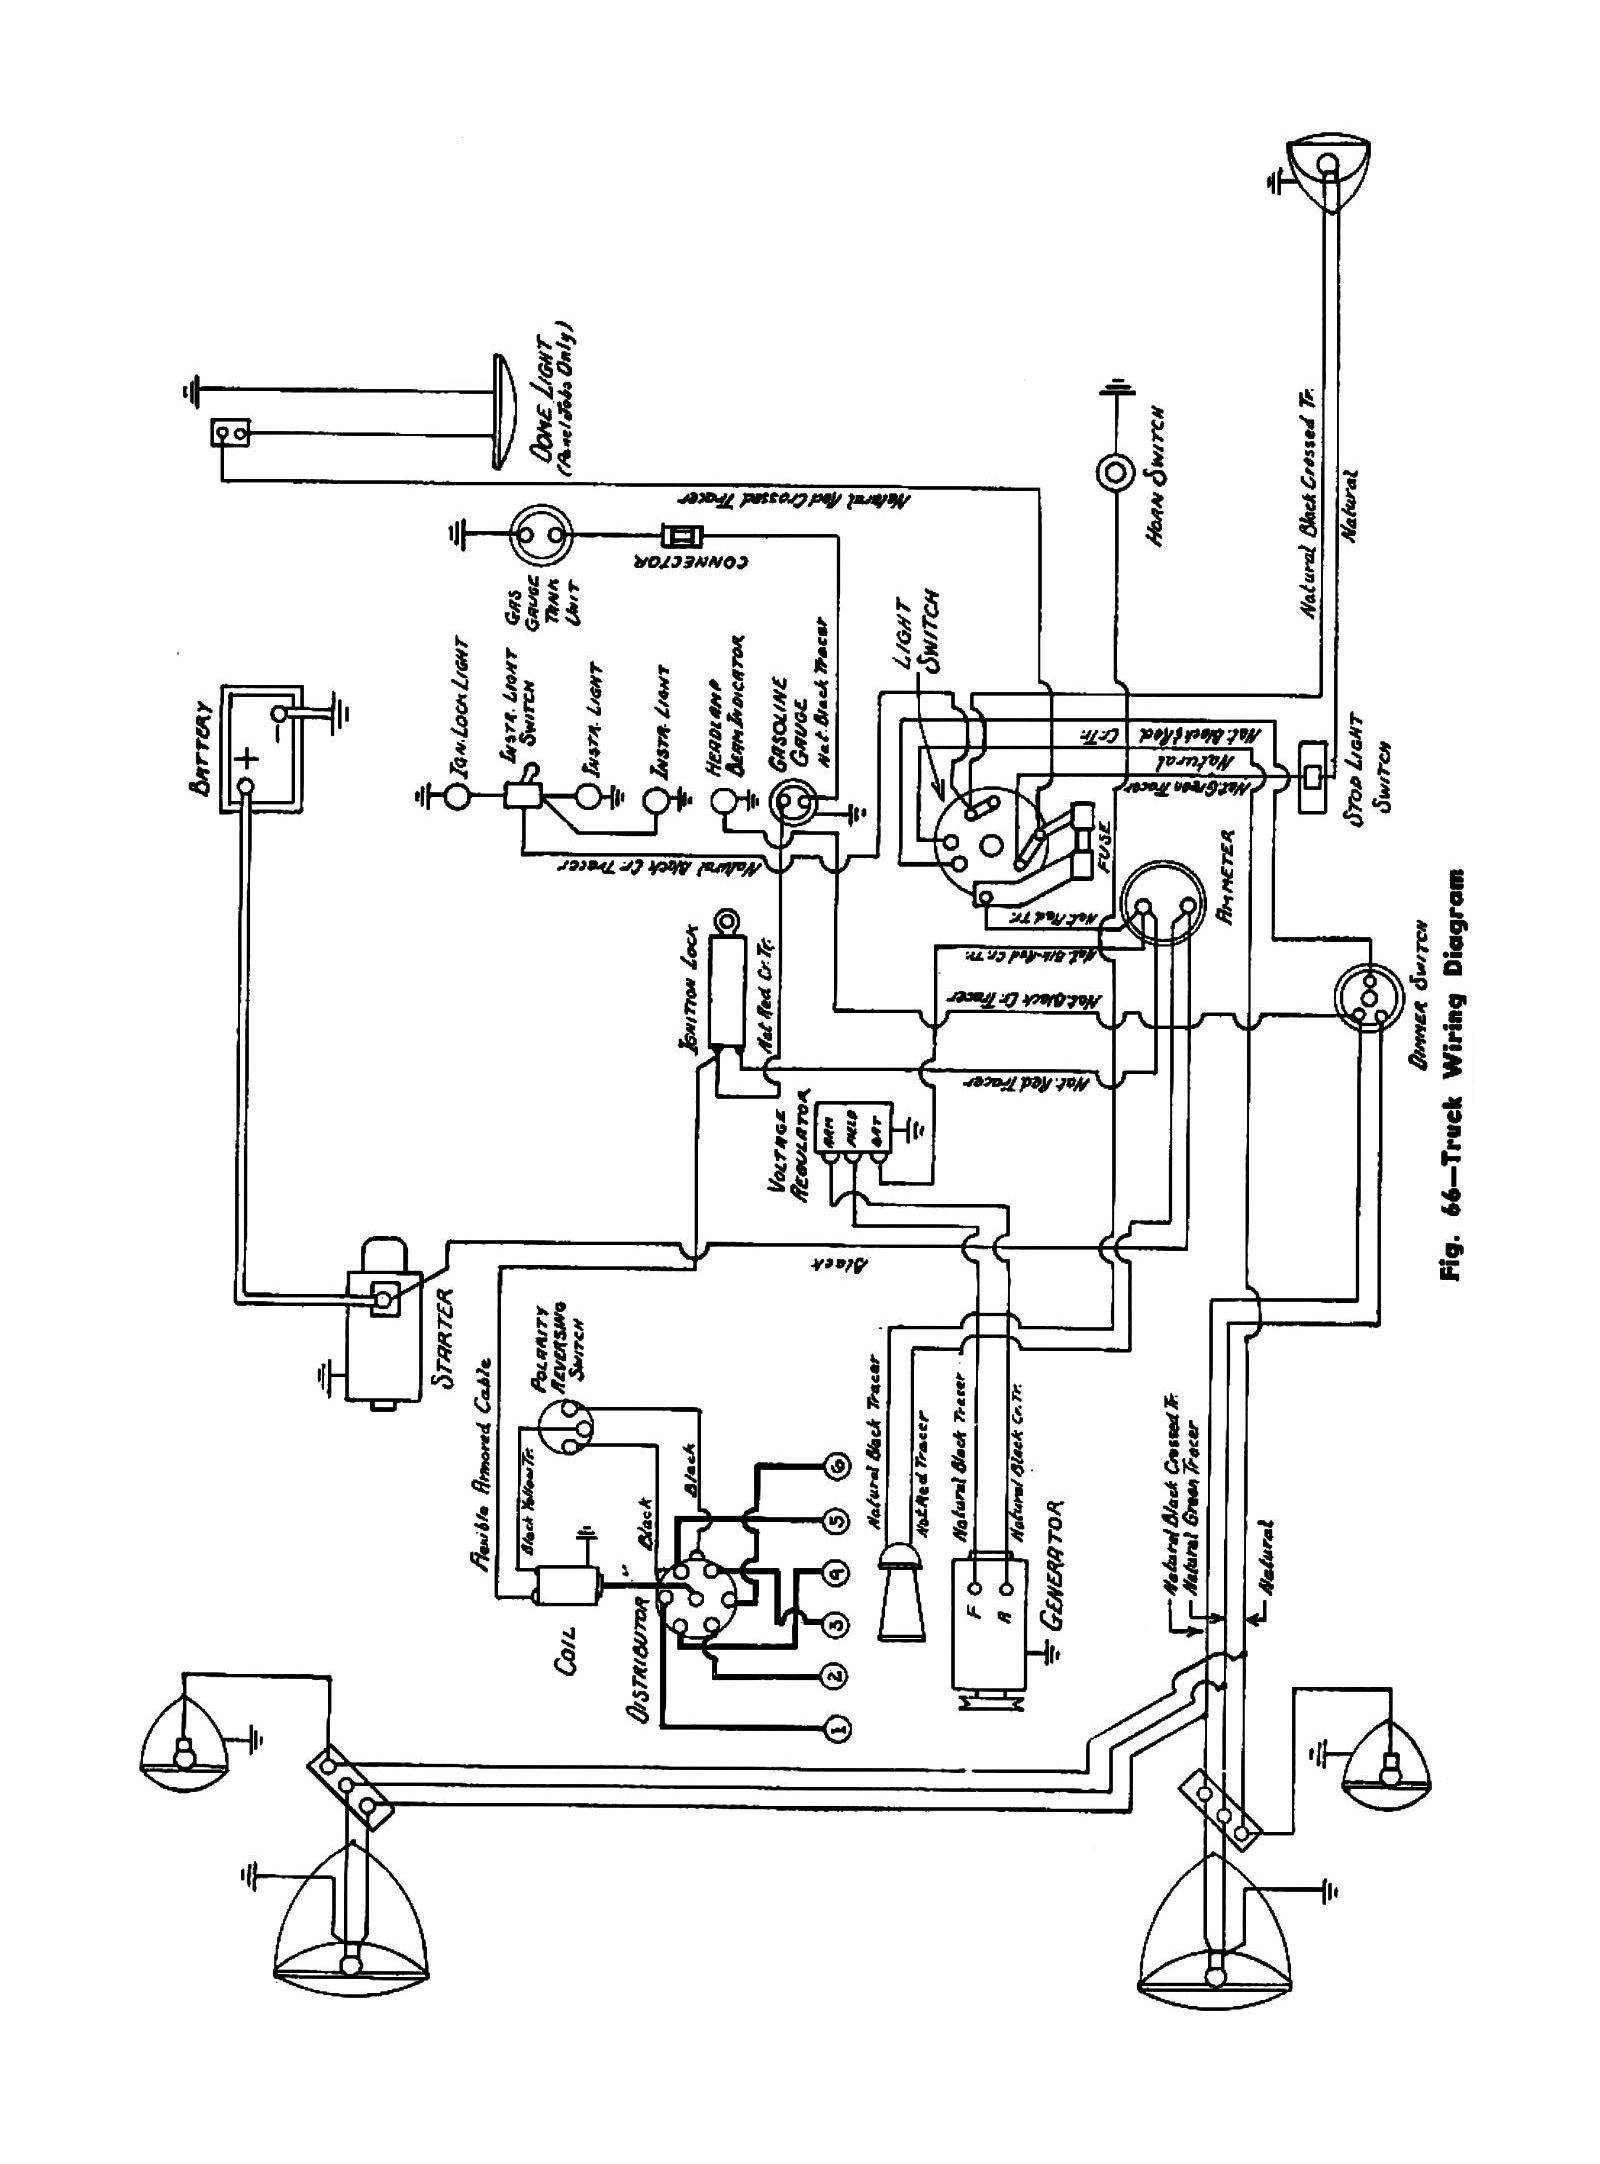 1929 Ford Electrical Wiring | Wiring Diagram A Ford Model Wiring Diagram With Fuse on 1987 dodge ramcharger wiring diagram, 31 ford wiring diagram, 1965 oldsmobile 442 wiring diagram, 1940 ford wiring diagram, ignition wiring diagram, 1950 ford wiring diagram, 1957 ford fairlane wiring diagram, 1964 ford galaxie wiring diagram, 1973 ford mustang wiring diagram, 1932 ford wiring diagram, 1954 ford wiring diagram, 1939 ford truck wiring diagram, 1964 impala ss wiring diagram, 1967 pontiac firebird wiring diagram, 1955 ford thunderbird wiring diagram, 1962 chevy impala wiring diagram, 1937 ford wiring diagram, 1956 ford wiring diagram, 1938 ford wiring diagram, 1966 mustang wiring diagram,